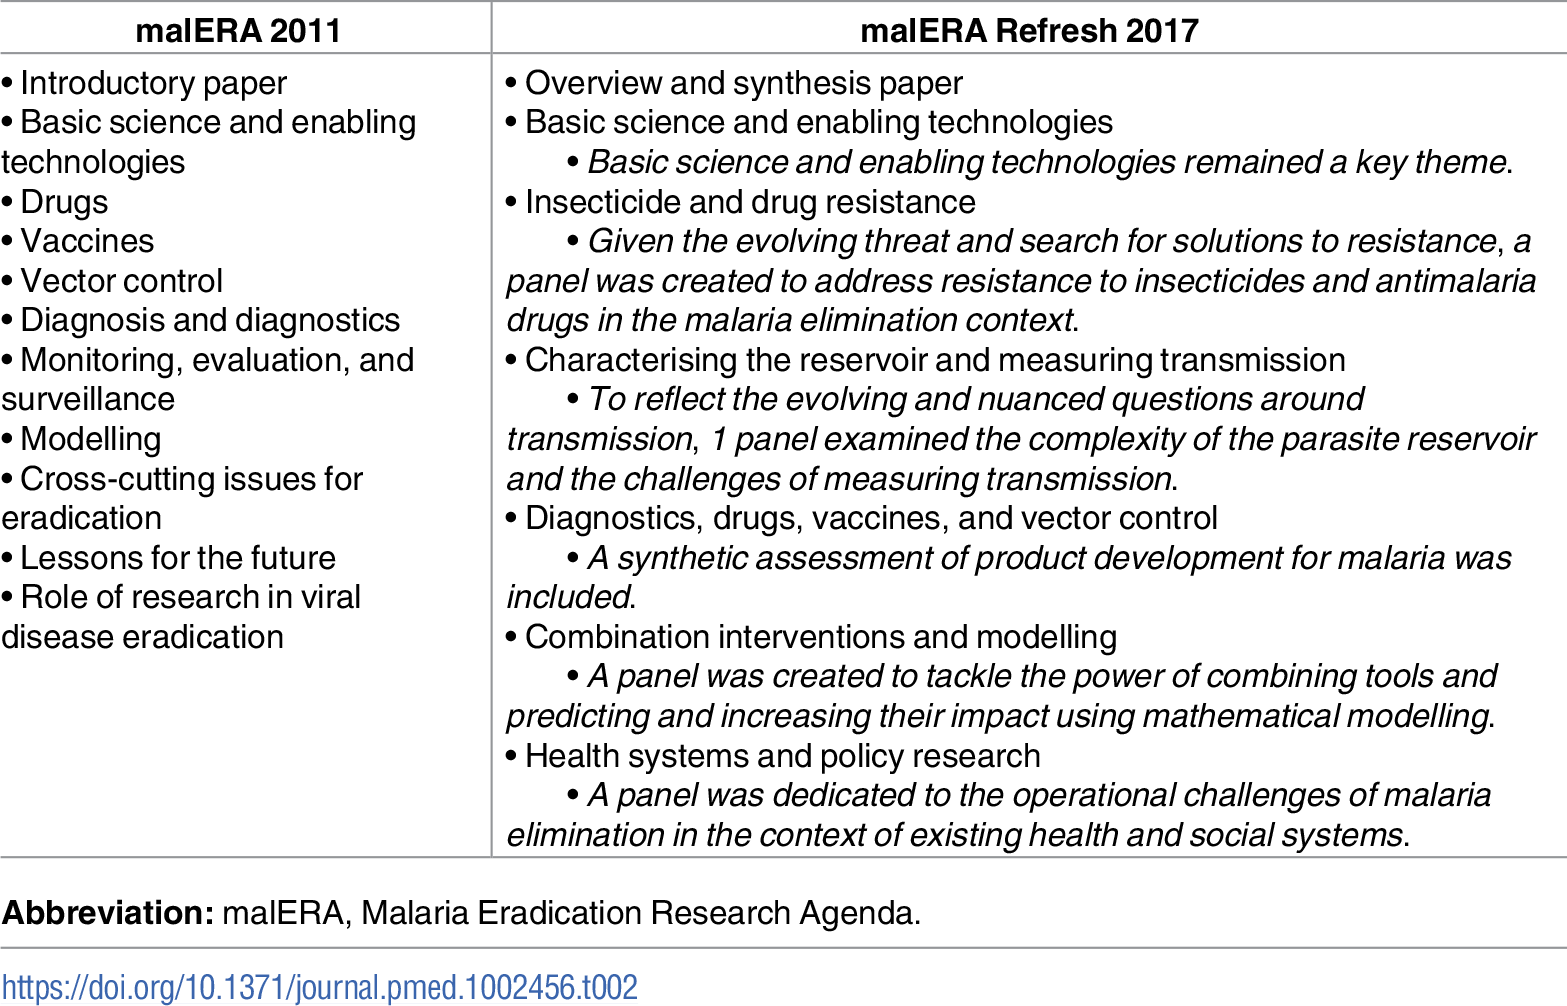 Using the themes from the first malERA process as a starting point, malERA Refresh was organised by research themes that are relevant for malaria elimination and eradication and reflect current hypotheses and new thinking.